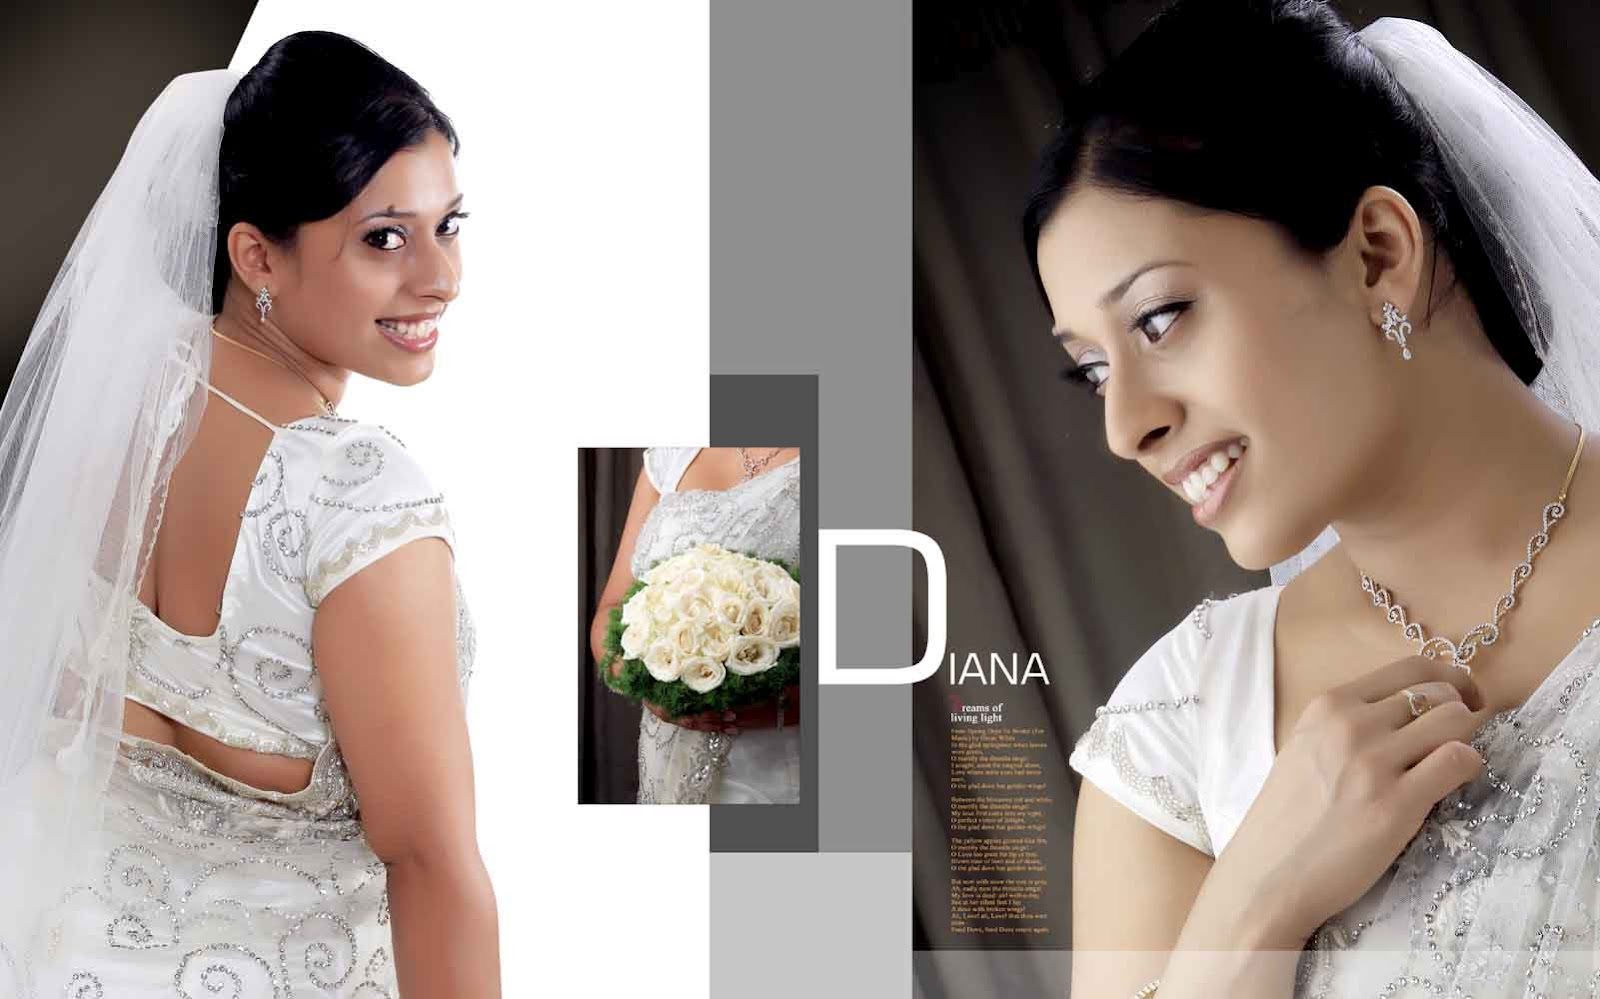 do you like to share this wedding photo albums for sale - Wedding Album Design Ideas